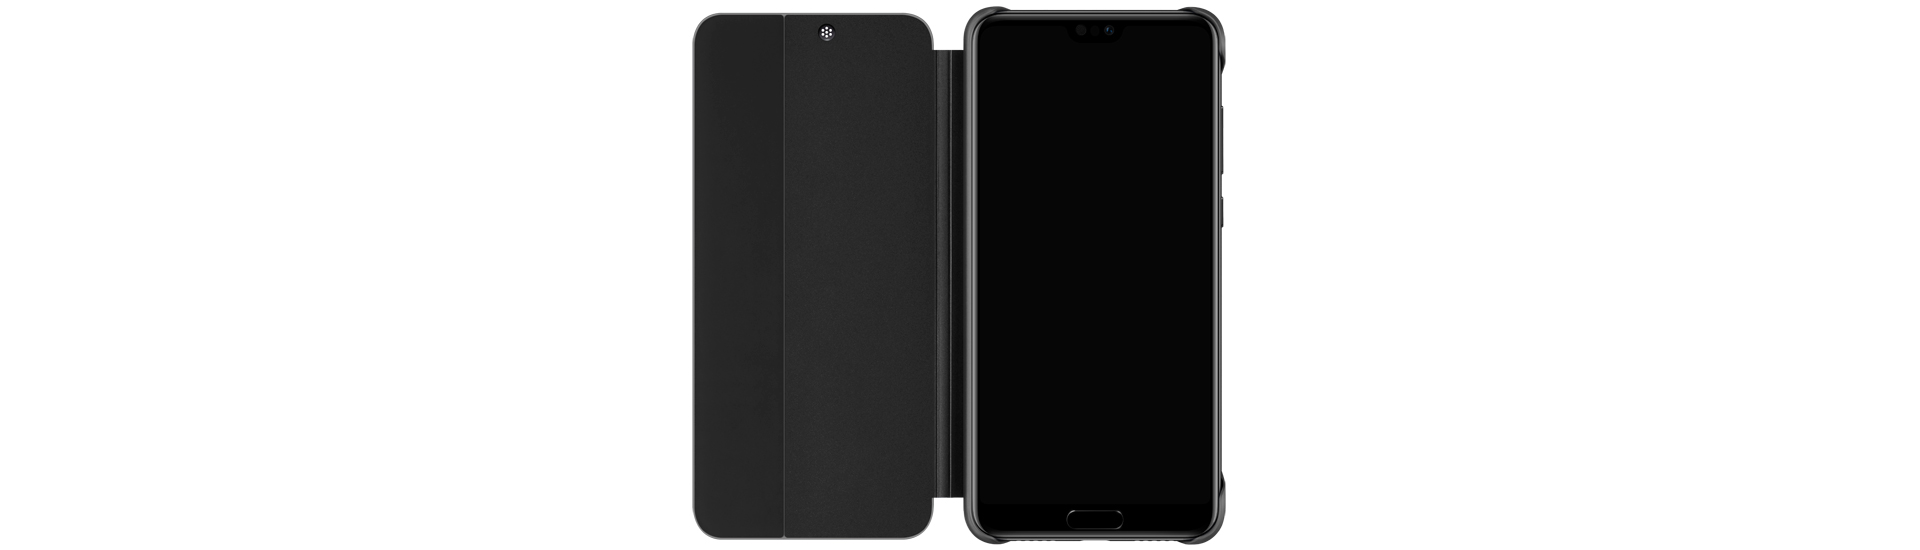 HUAWEI P20 Pro Smart View Flip Cover